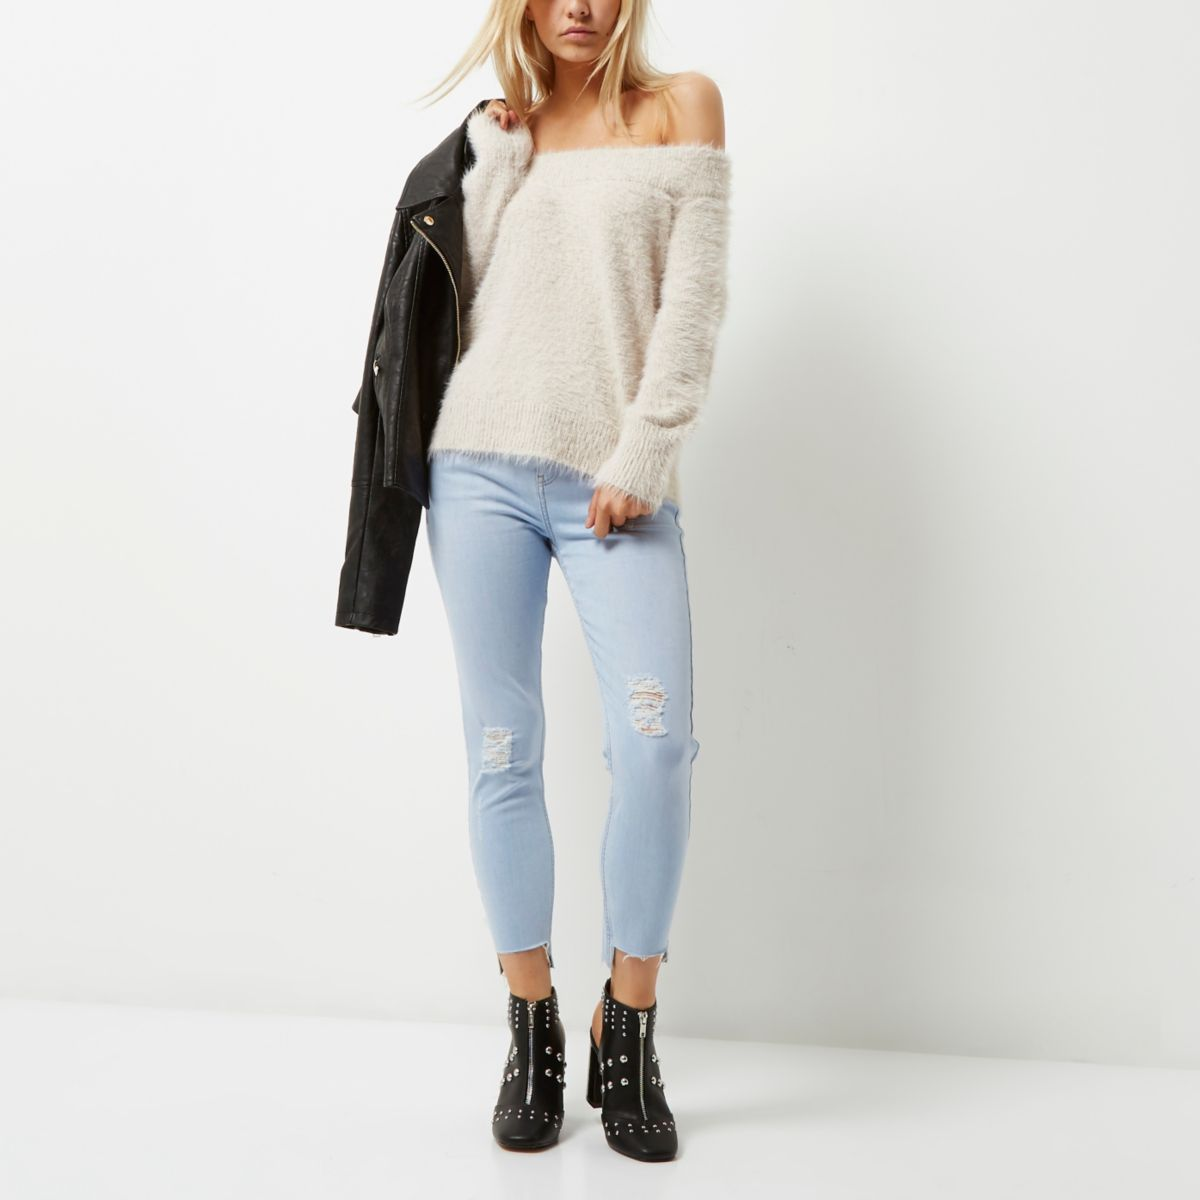 Find great deals on Womens Petite Skinny Jeans at Kohl's today! Sponsored Links Outside companies pay to advertise via these links when specific phrases and words are searched.